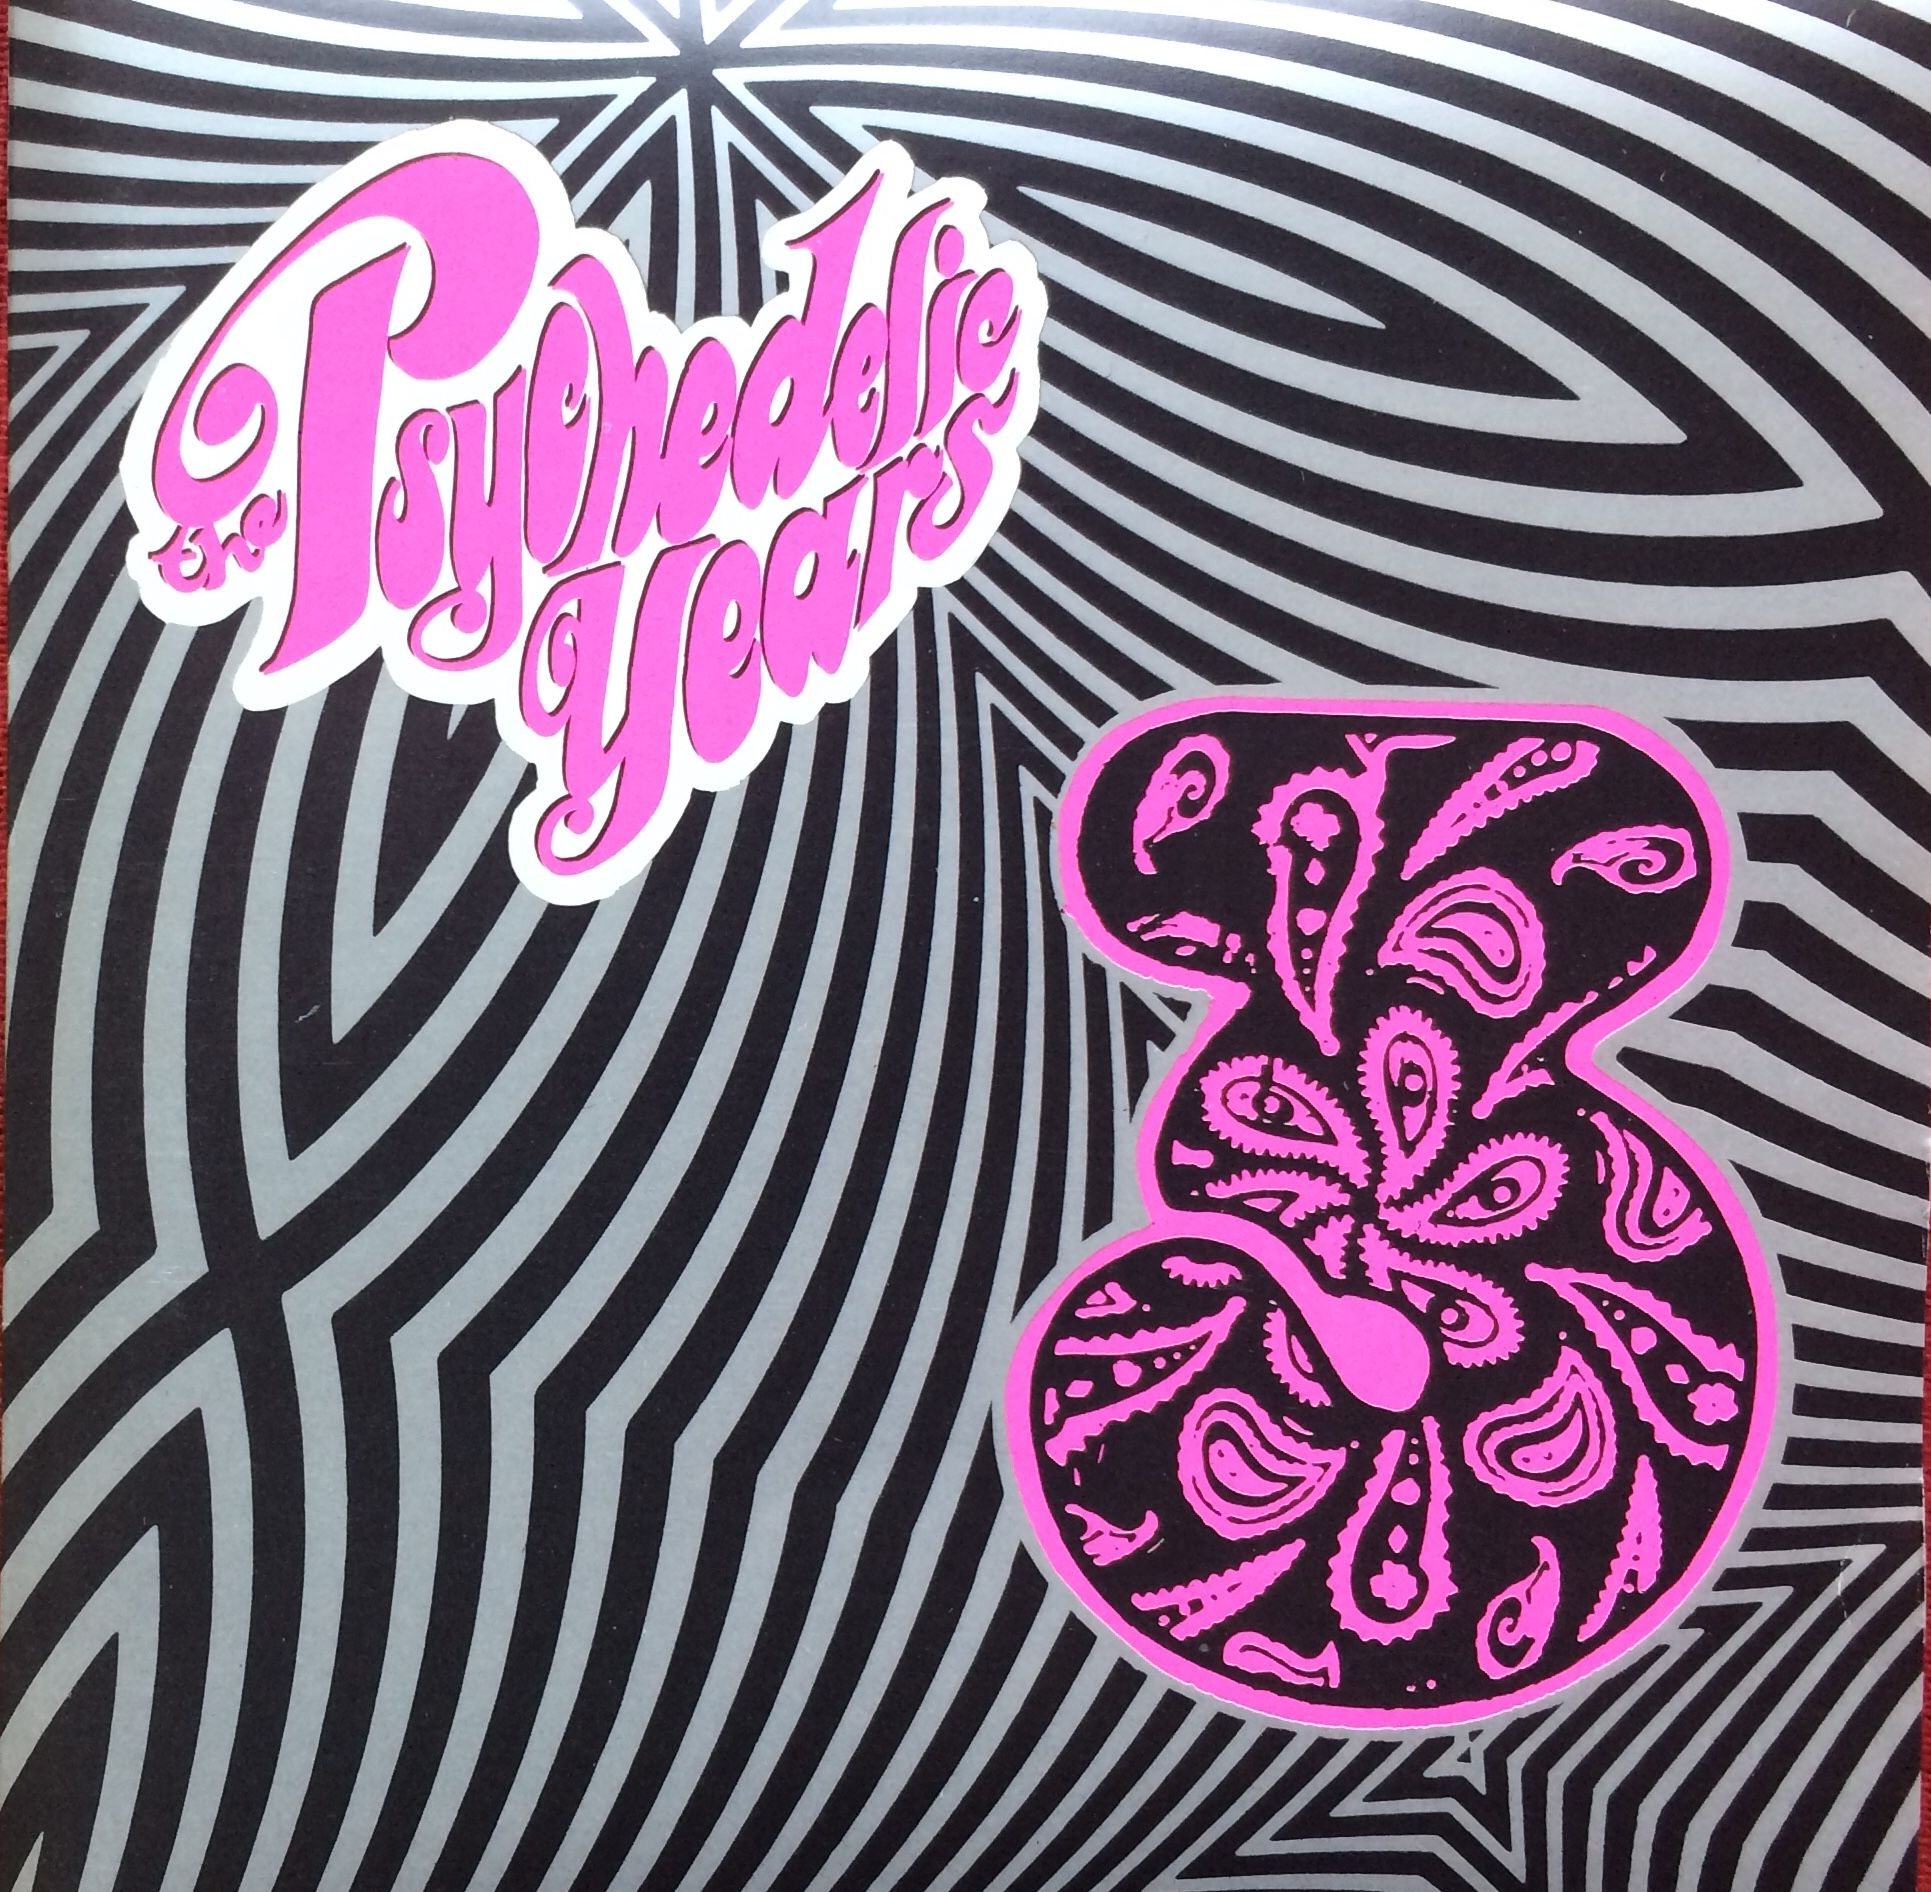 Various Artists: The Psychedelic years 1966-1969 volume 3 - Great Britain. CD (Knight records 1990)